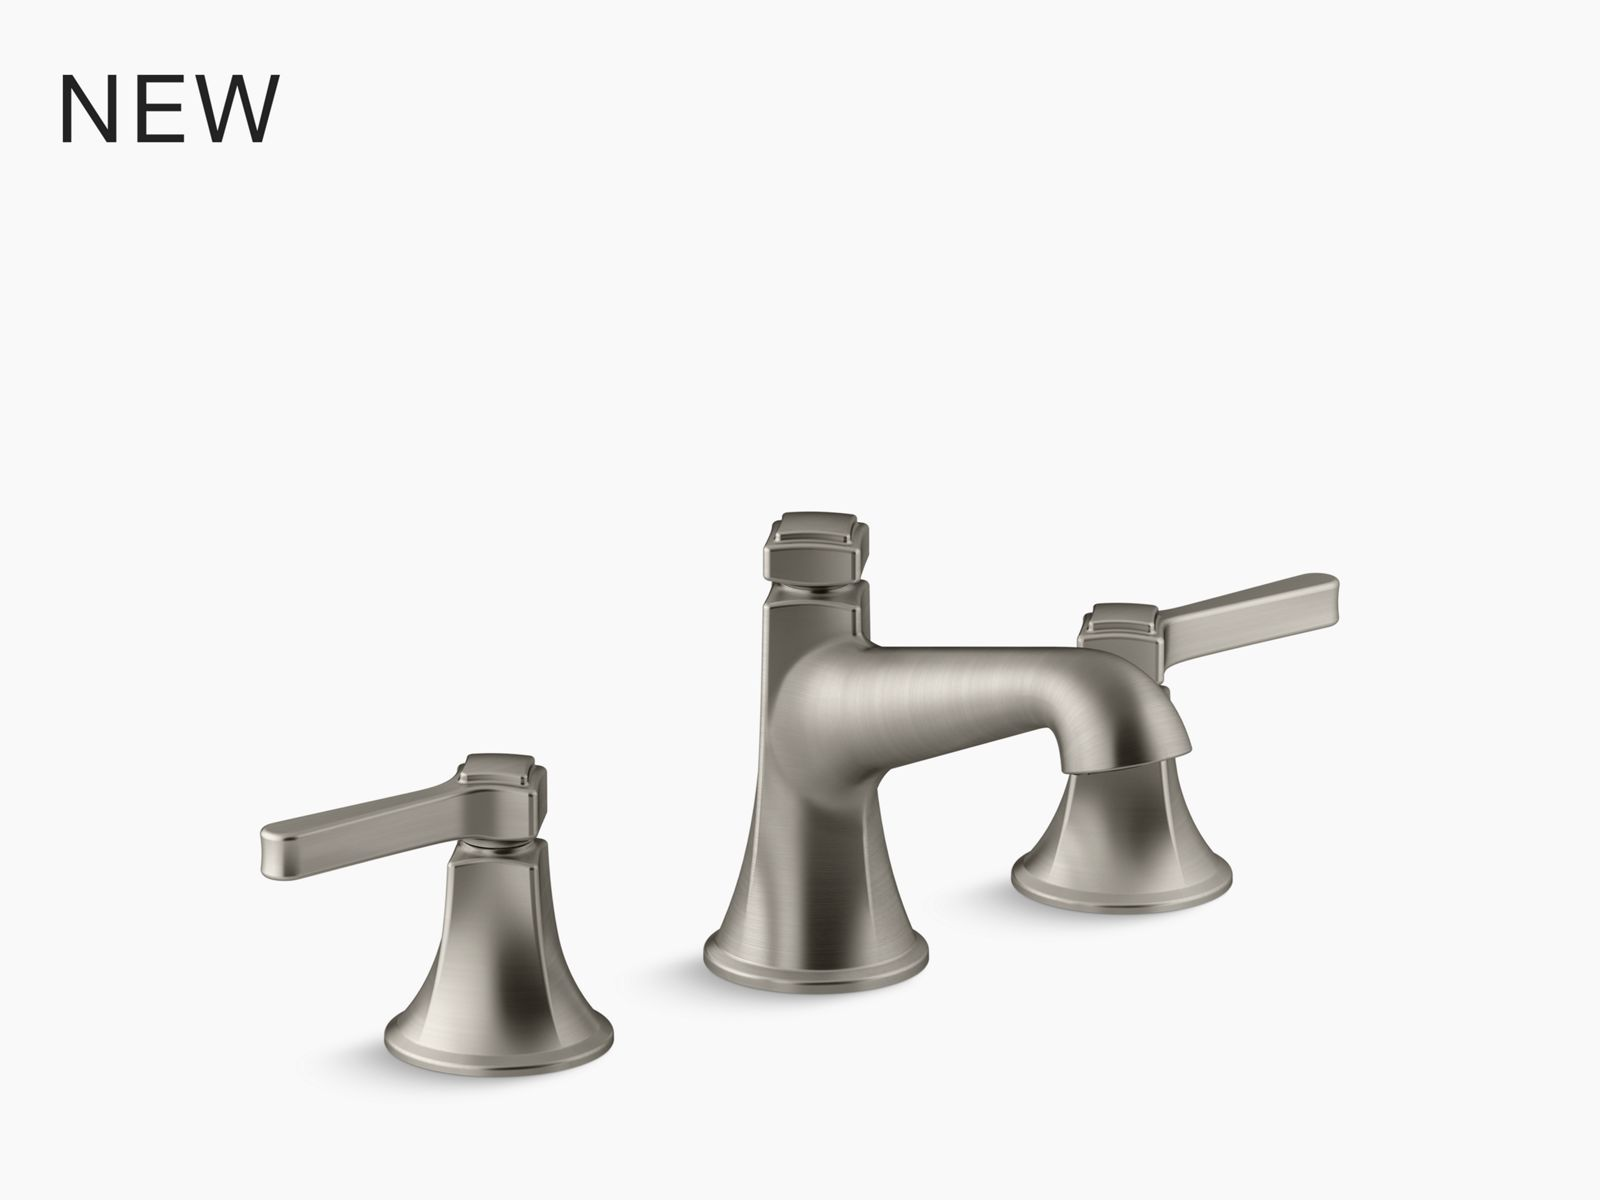 forte centerset bathroom sink faucet with sculpted lever handles